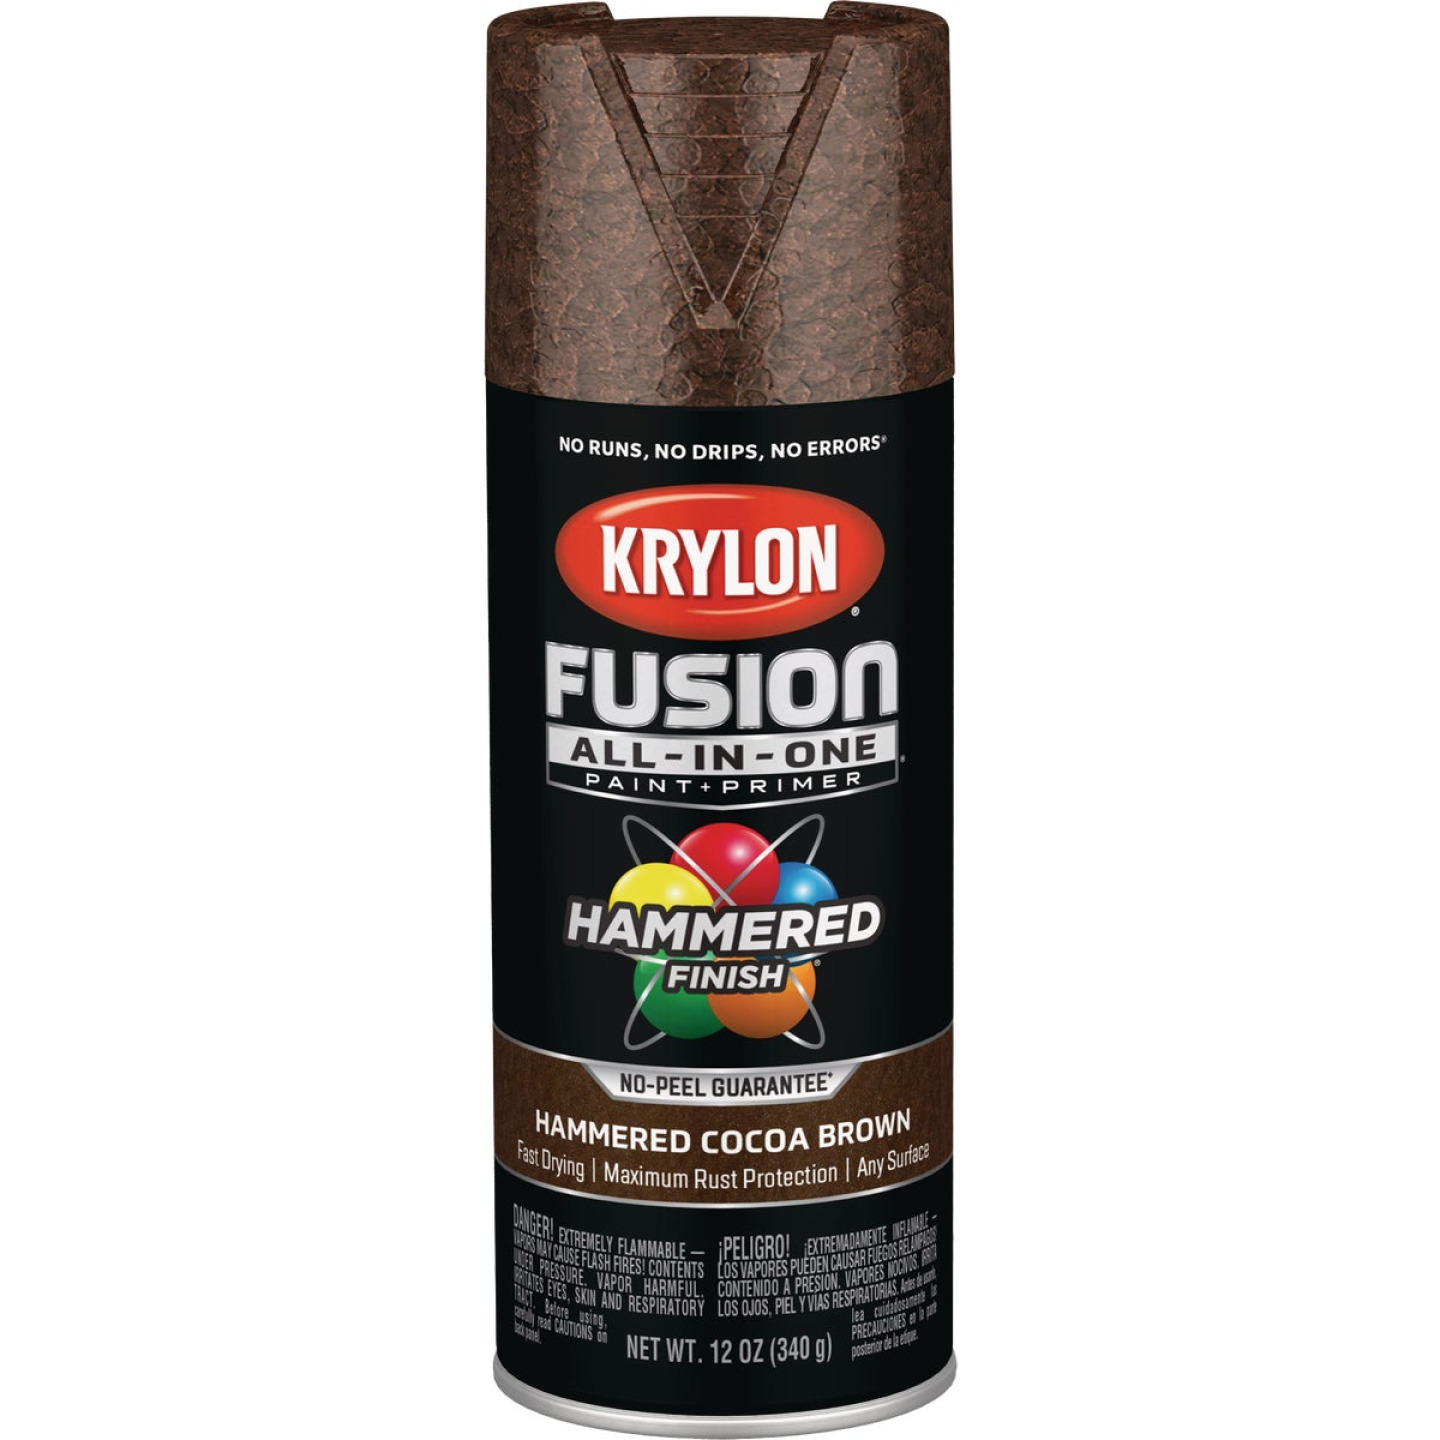 Krylon Fusion All-In-One Hammered Spray Paint & Primer, Cocoa Brown Image 1